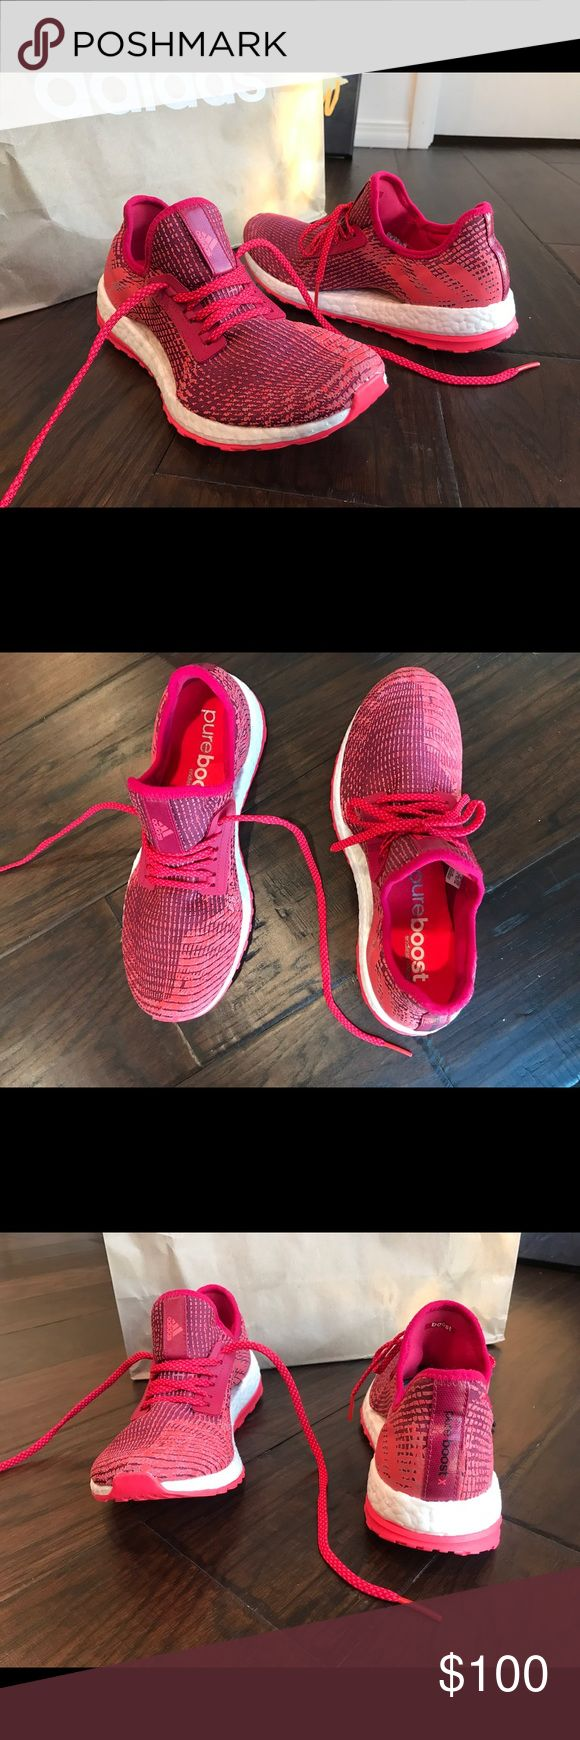 Adidas Pure Boost X Women's US Size 9 - Super cute athletic shoes! Love the pure boost because they are really comfortable and hug your foot just right! (Never worn) adidas Shoes Athletic Shoes